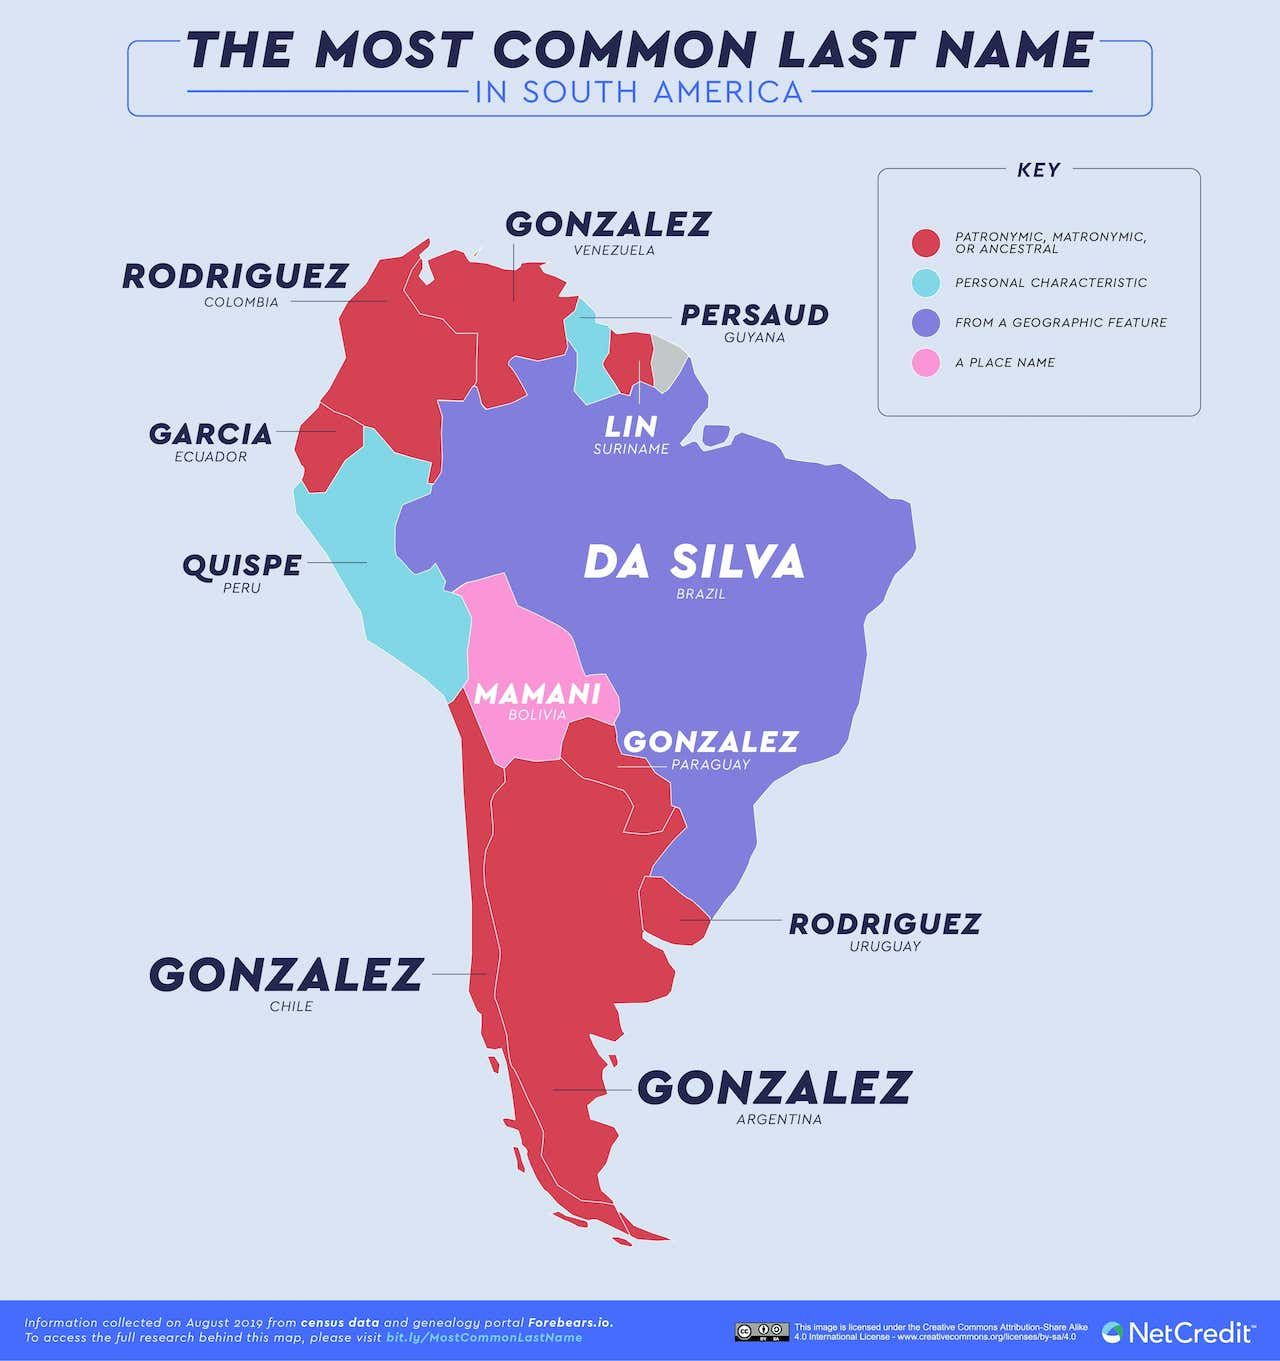 06_The-most-common-last-name-in-every-country_SouthAmerica